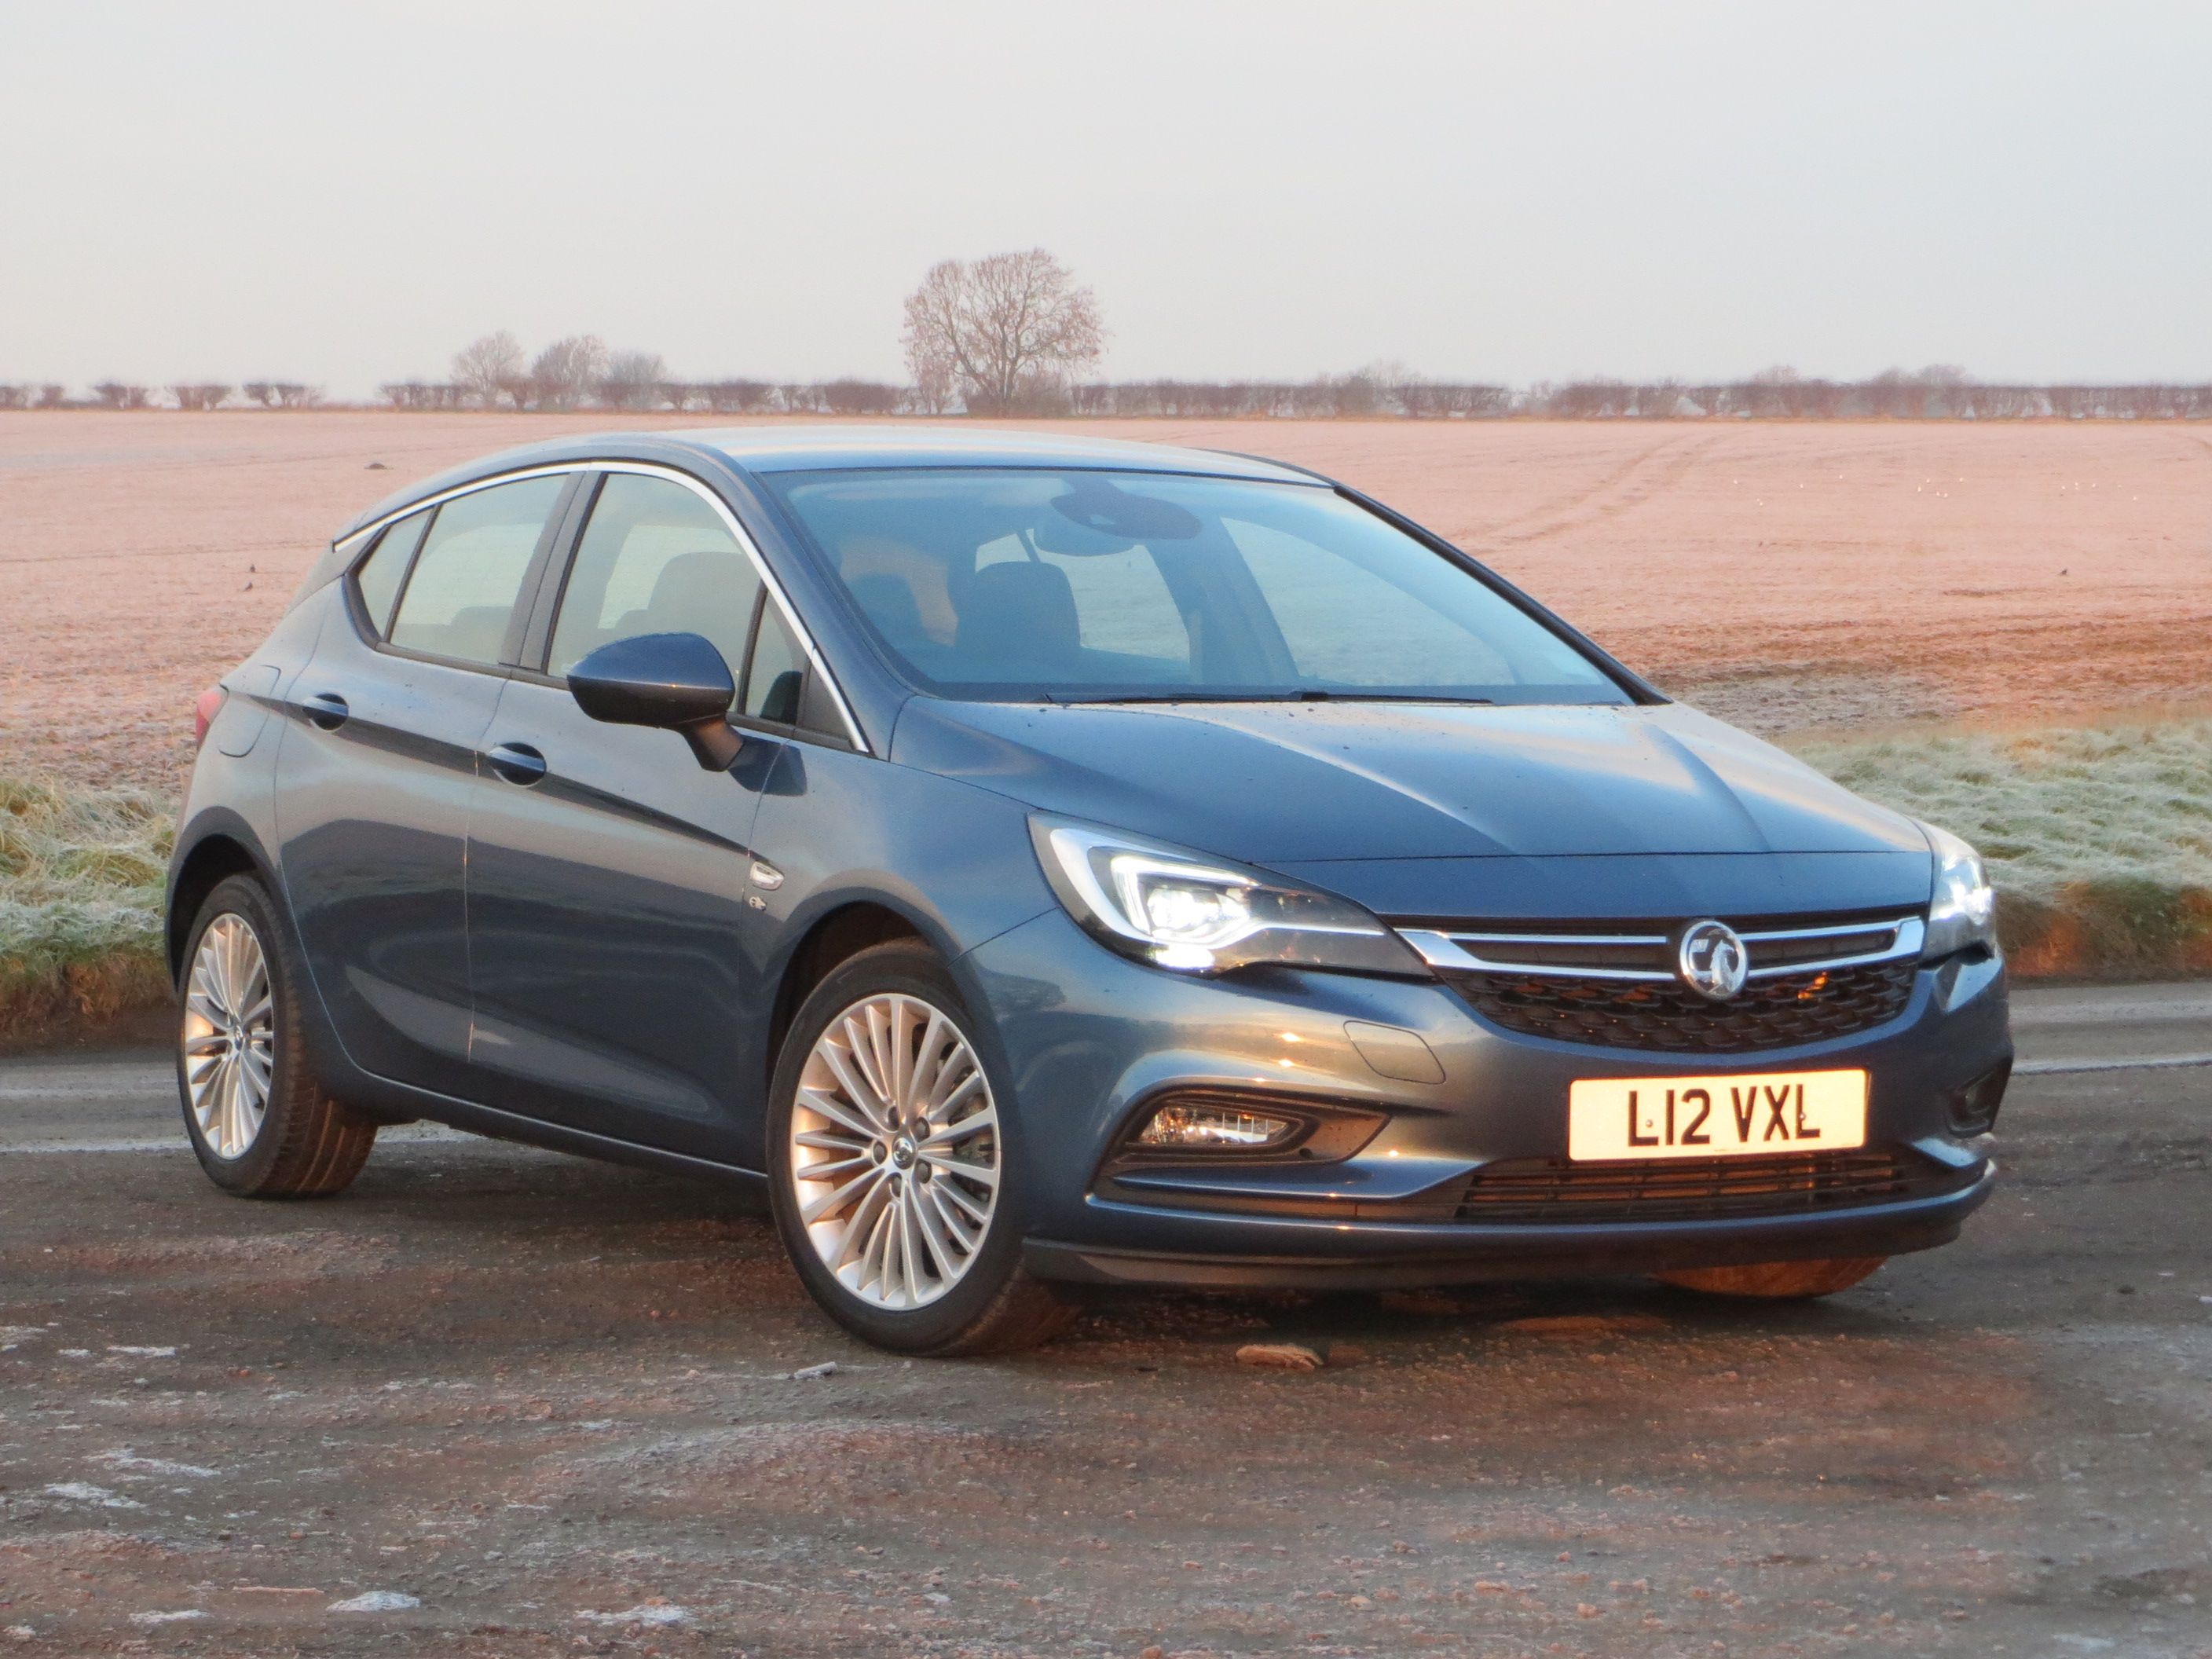 vauxhall astra elite nav 150ps turbo road test report review. Black Bedroom Furniture Sets. Home Design Ideas